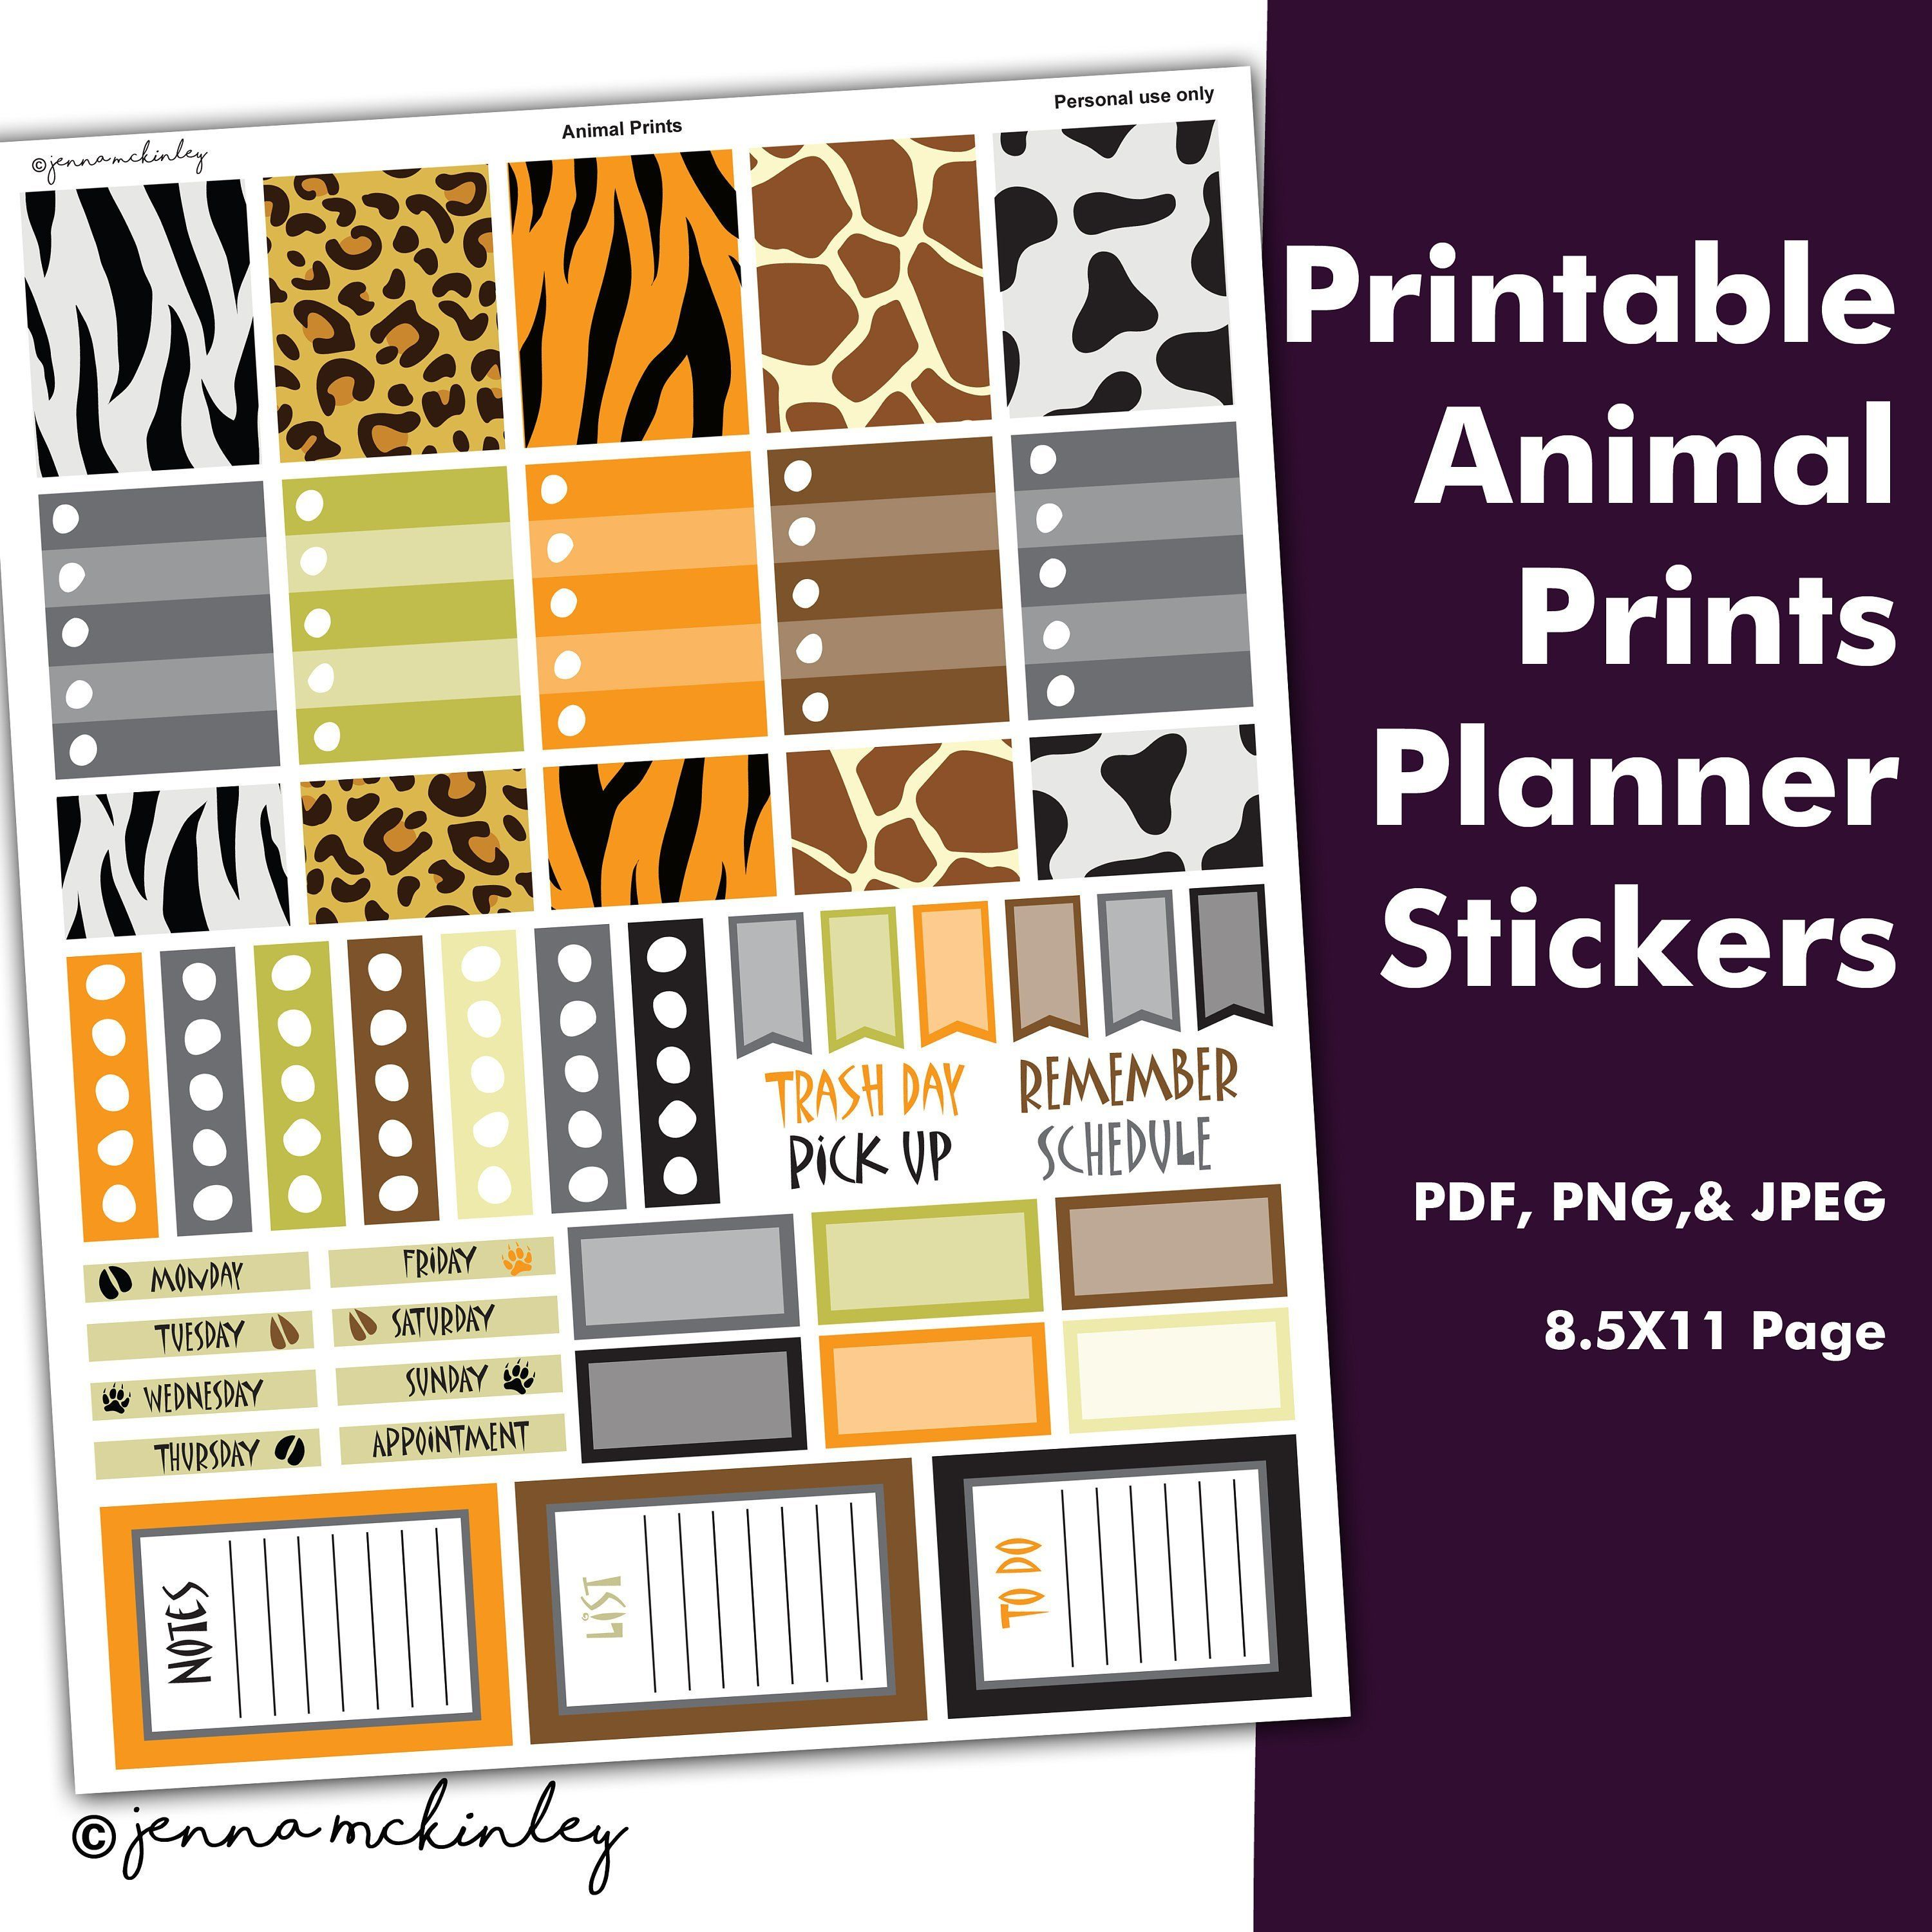 Printable Planner Stickers Animal Print Theme Instant Download Bullet Journal Bujo Weekly Spre Label Printing Stickers Printing Labels Planner Stickers